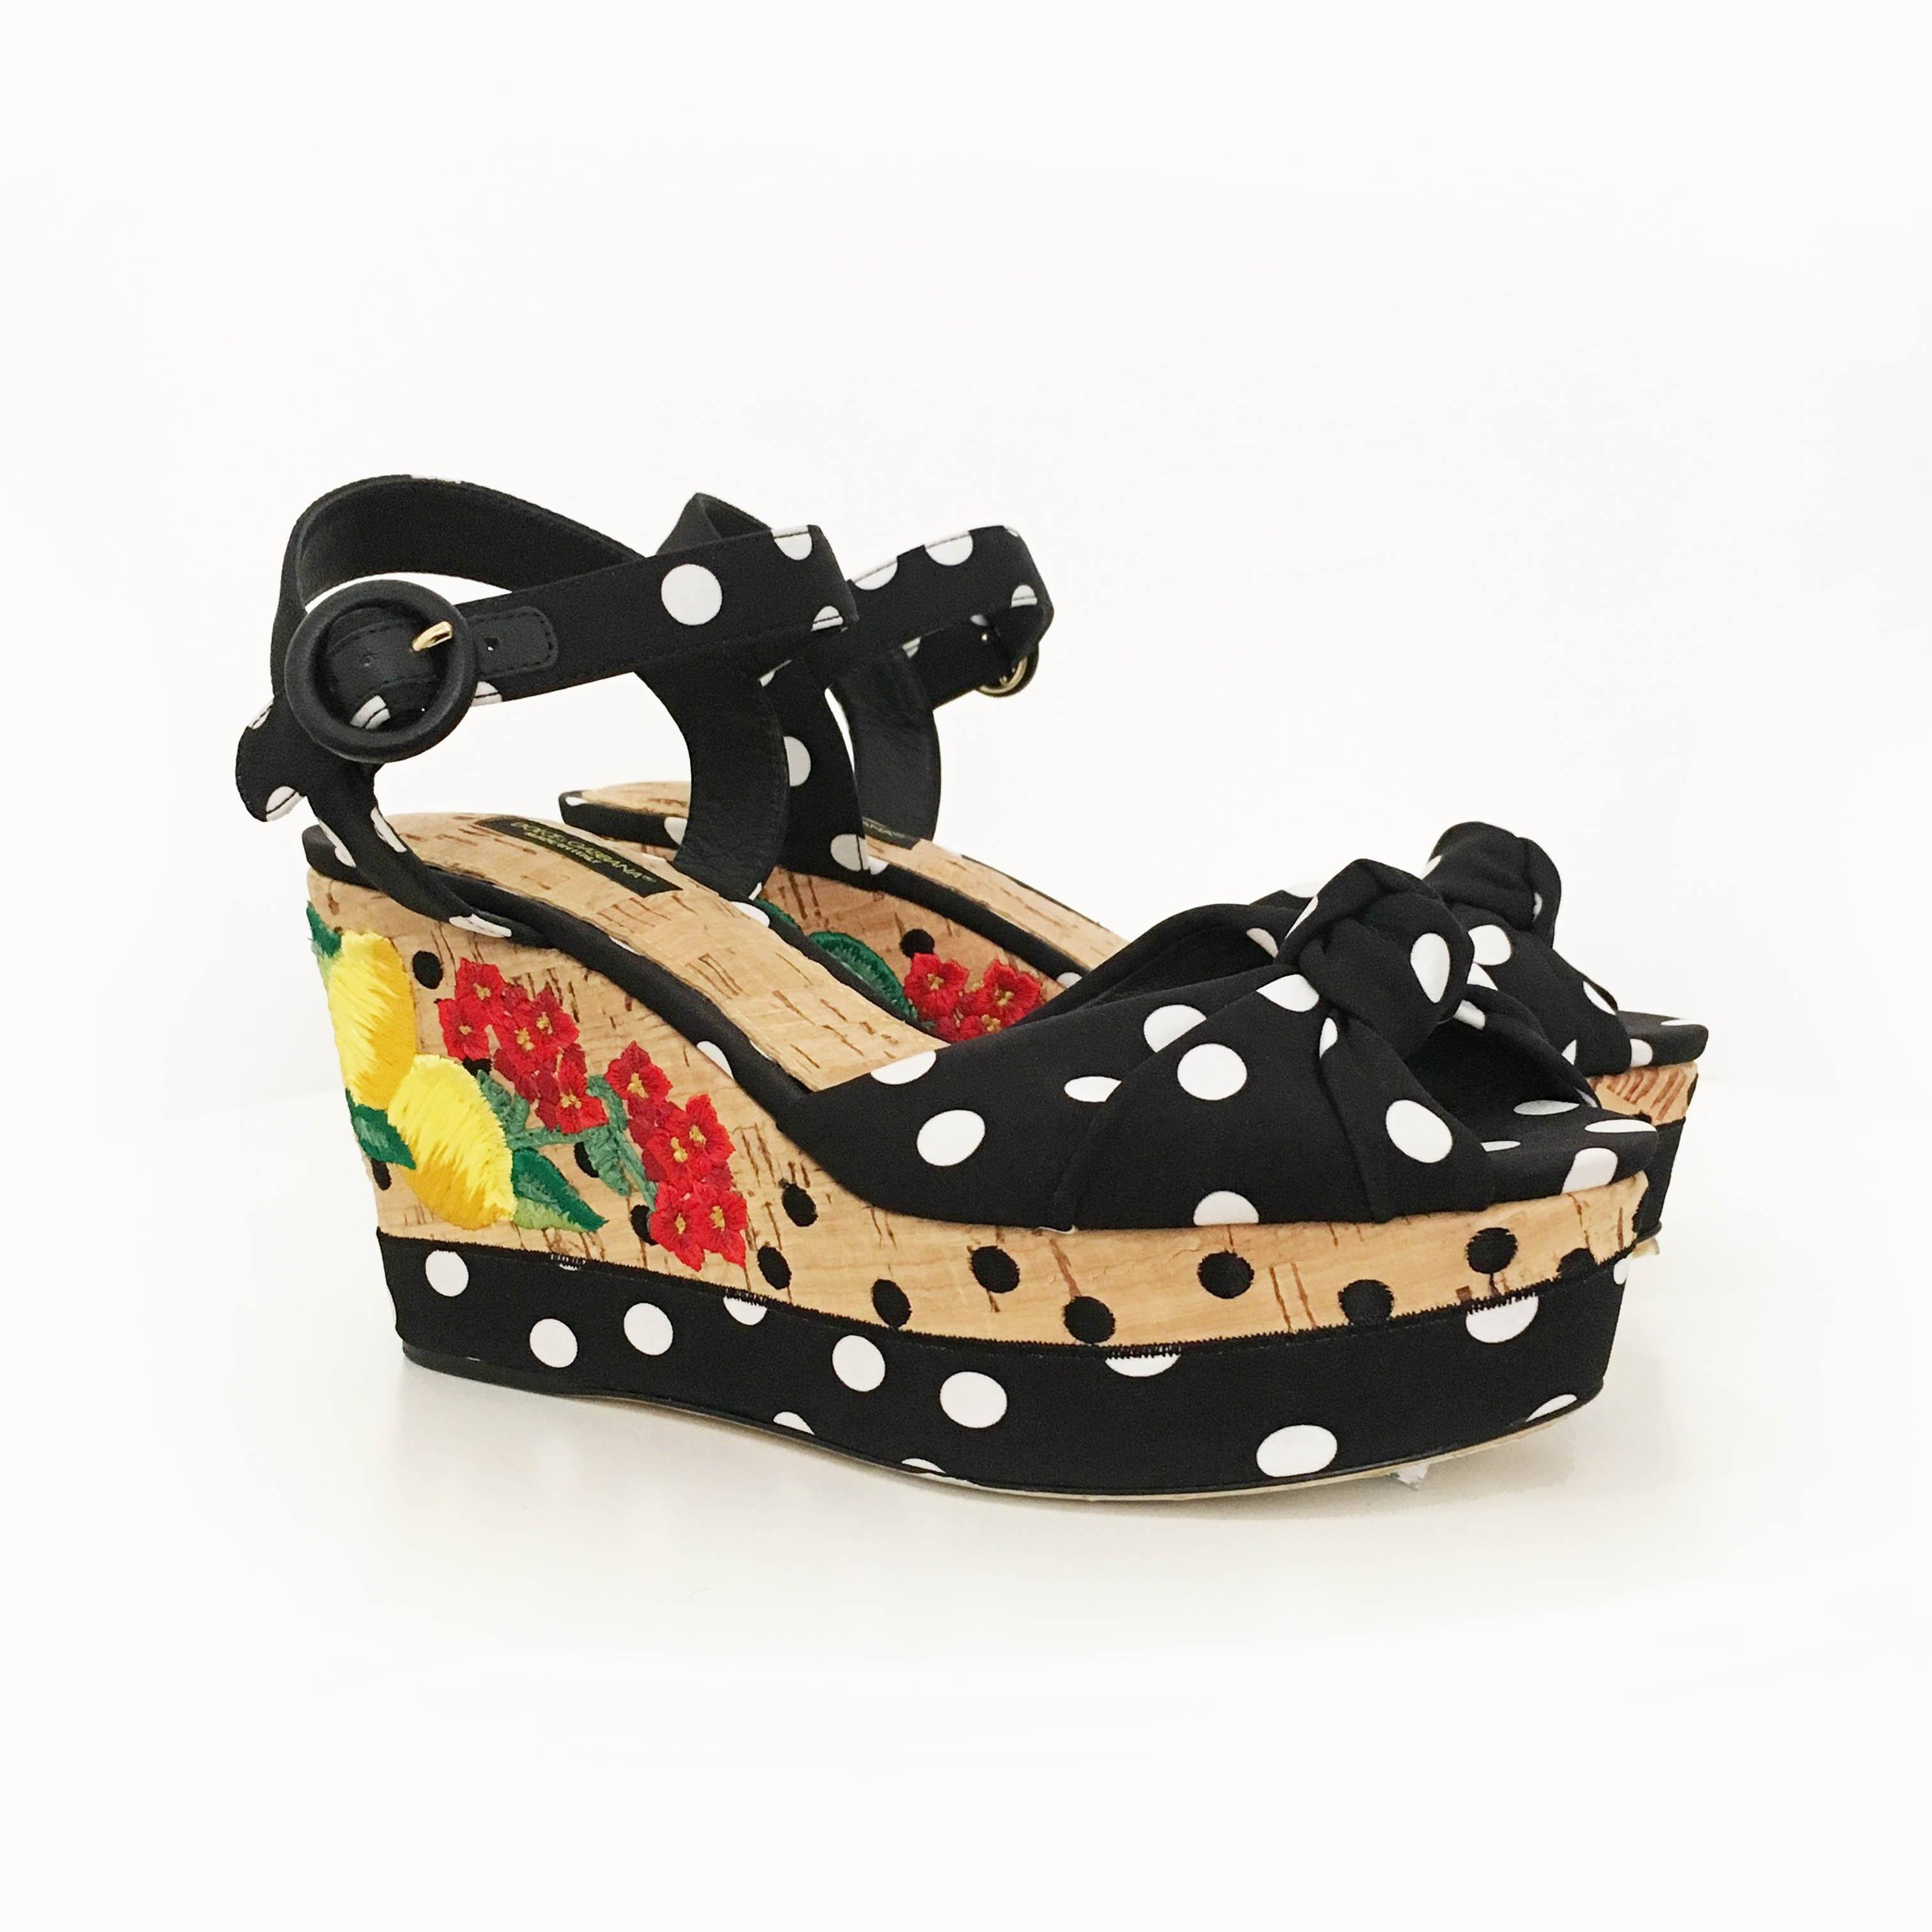 Dolce & Gabbana Polka-dot embroidered wedge sandals